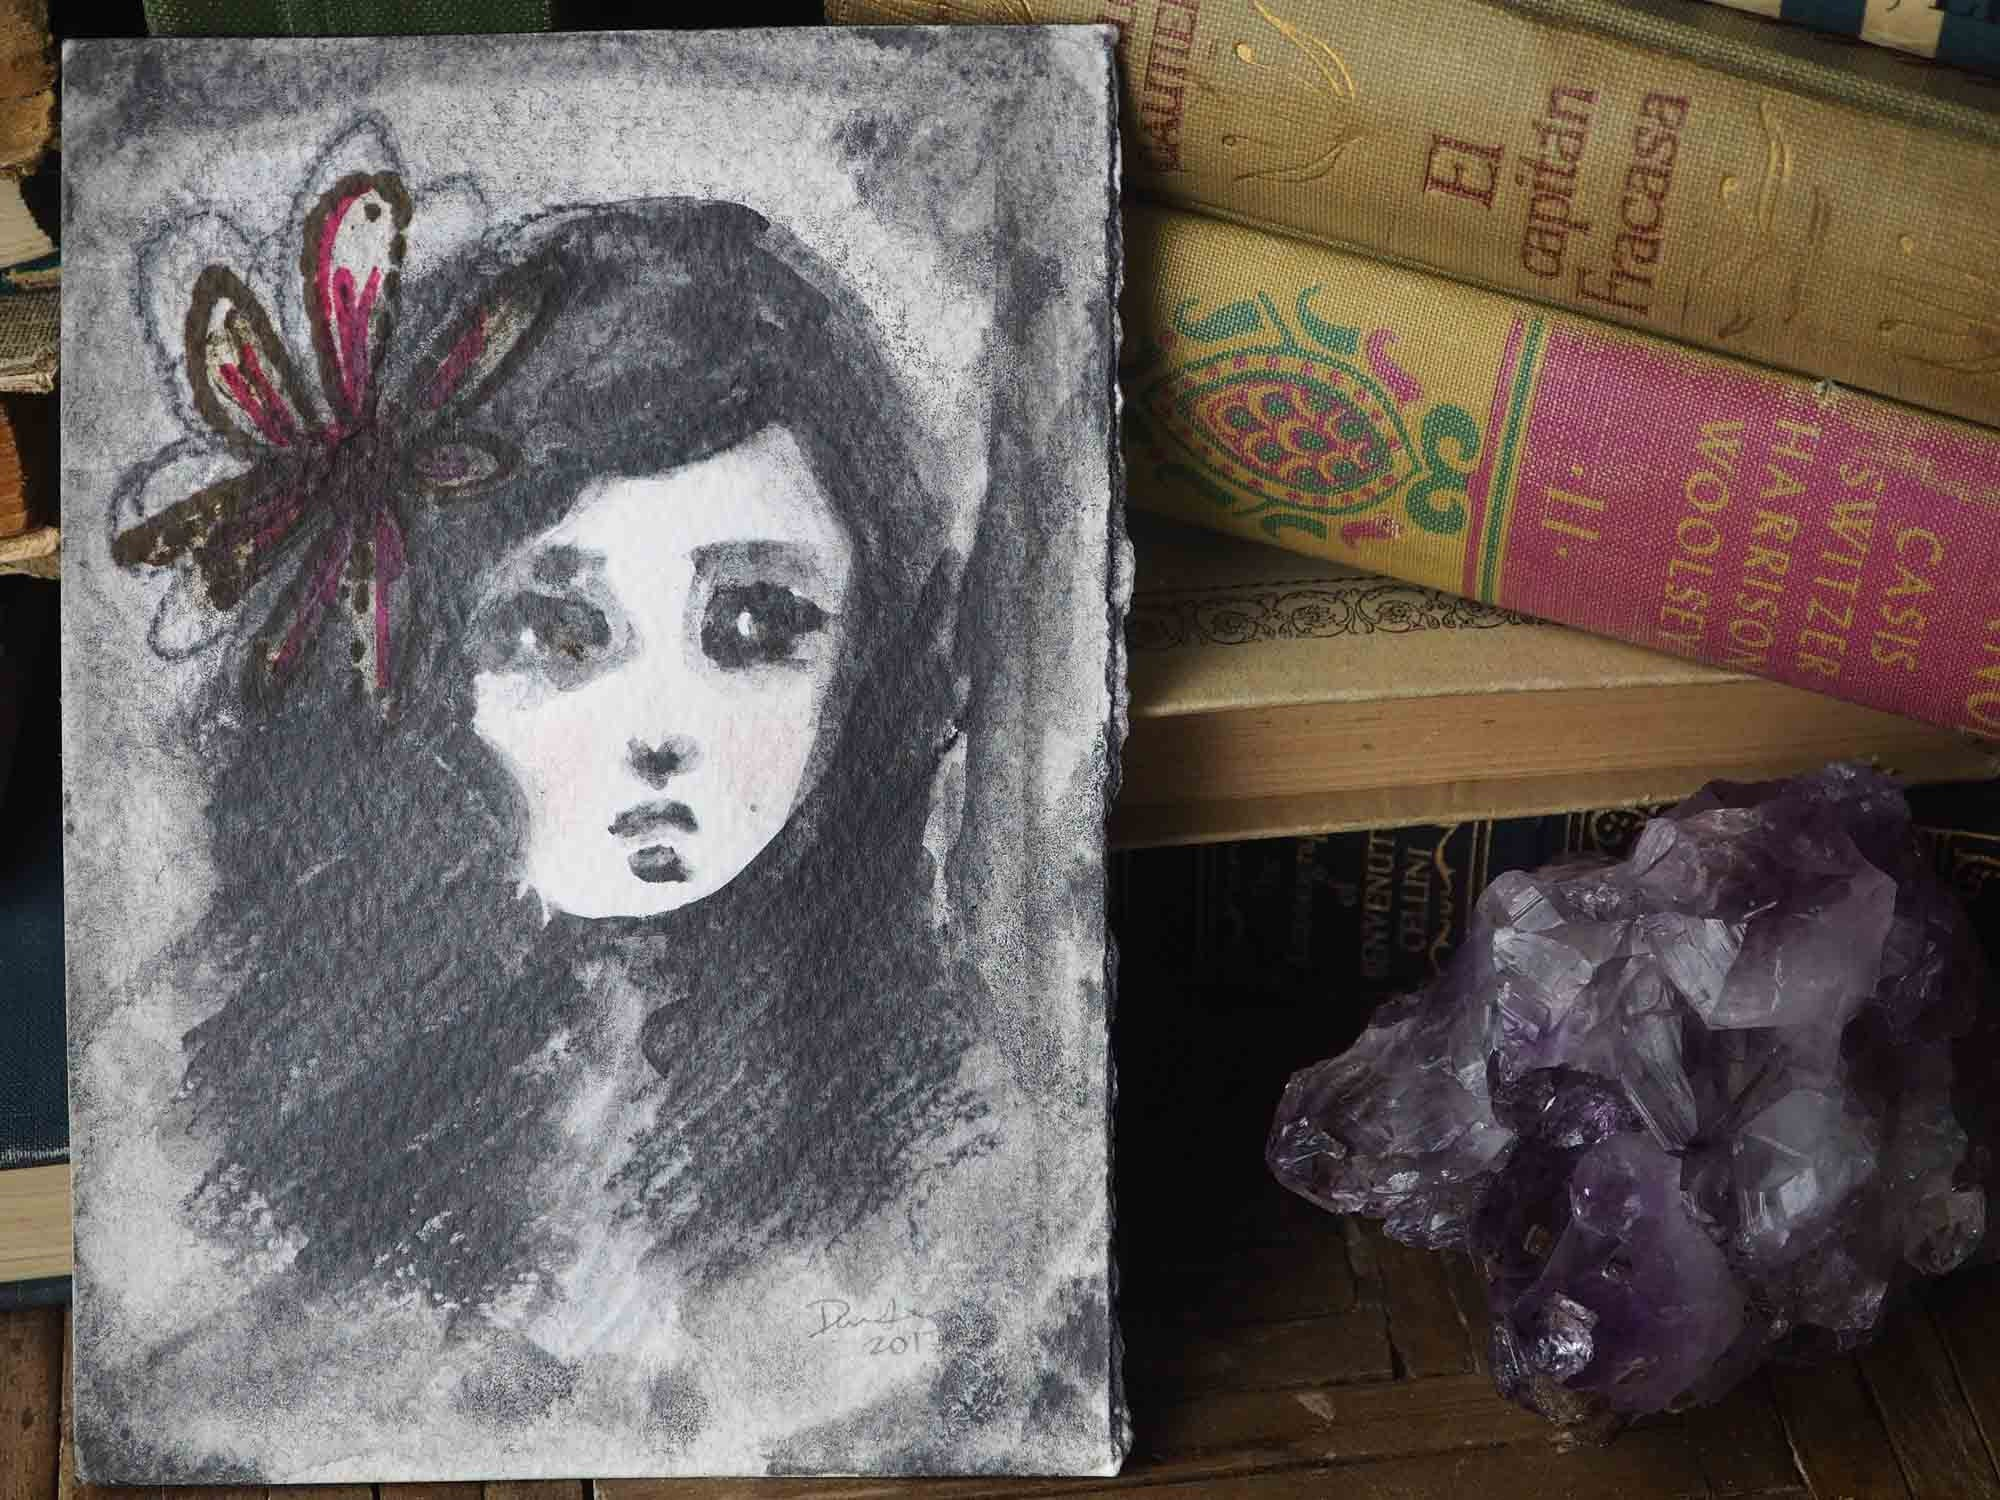 MARIANA, Original Art by Danita Art